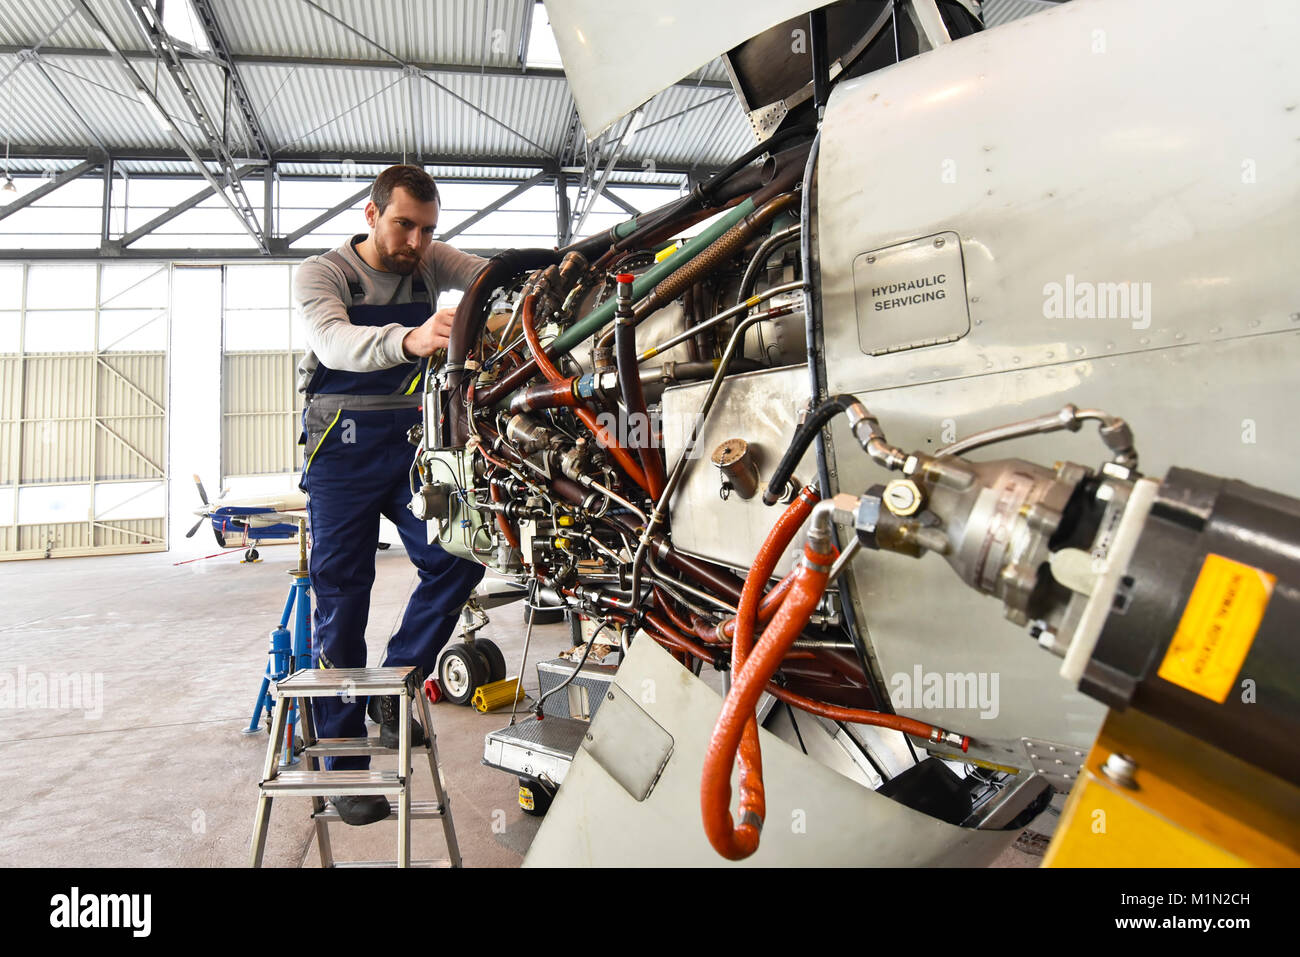 Aircraft mechanic repairs an aircraft engine in an airport hangar - Stock Image